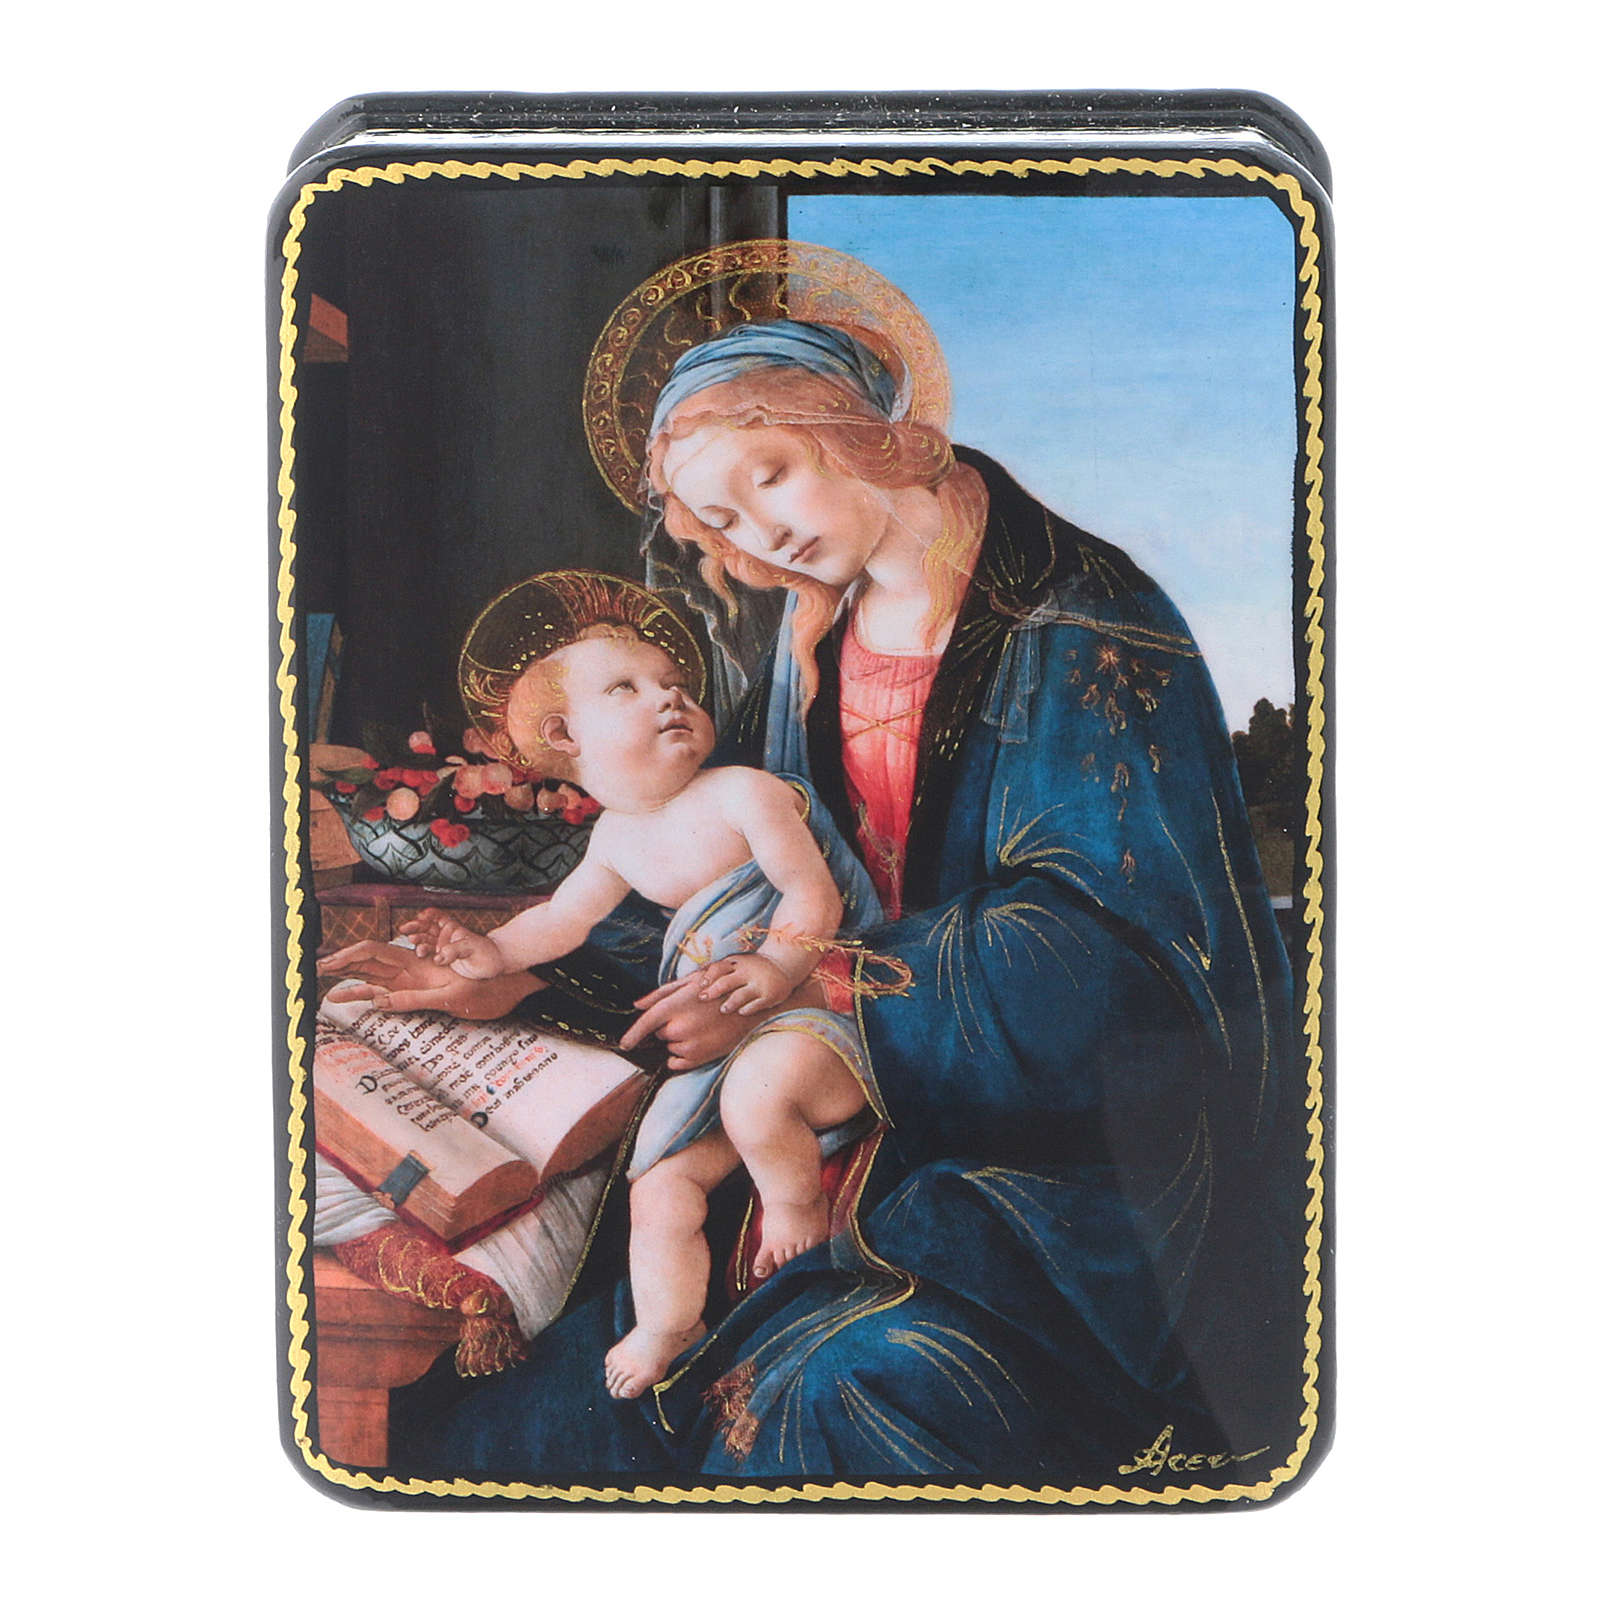 Russian papier machè and lacquer box Madonna of the Book Fedoskino style 11x8 cm 4